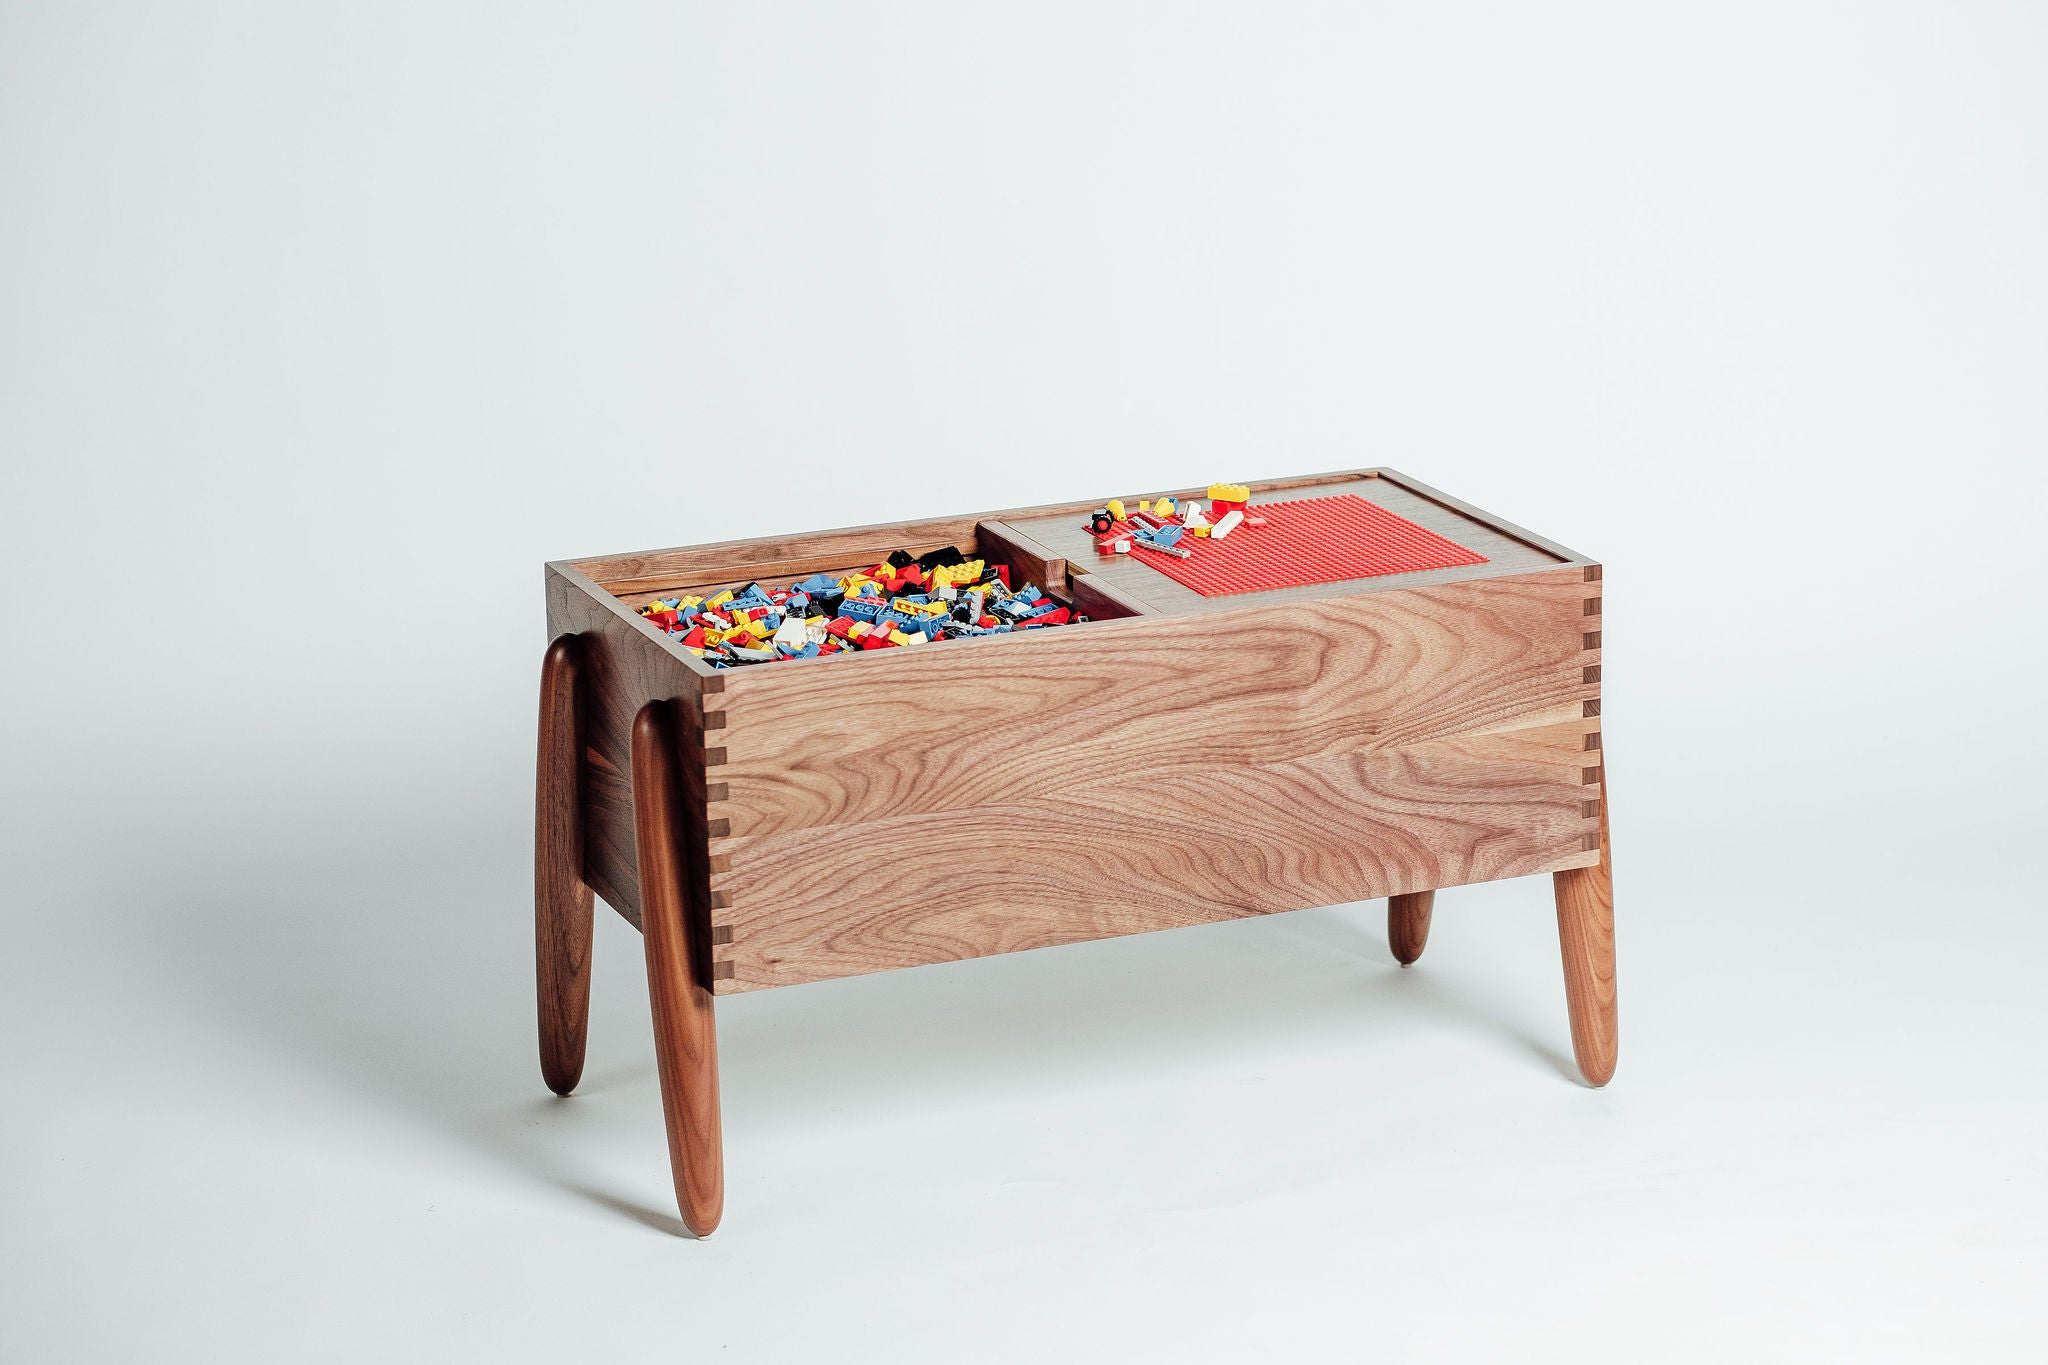 Solomon Storage & Play Bench